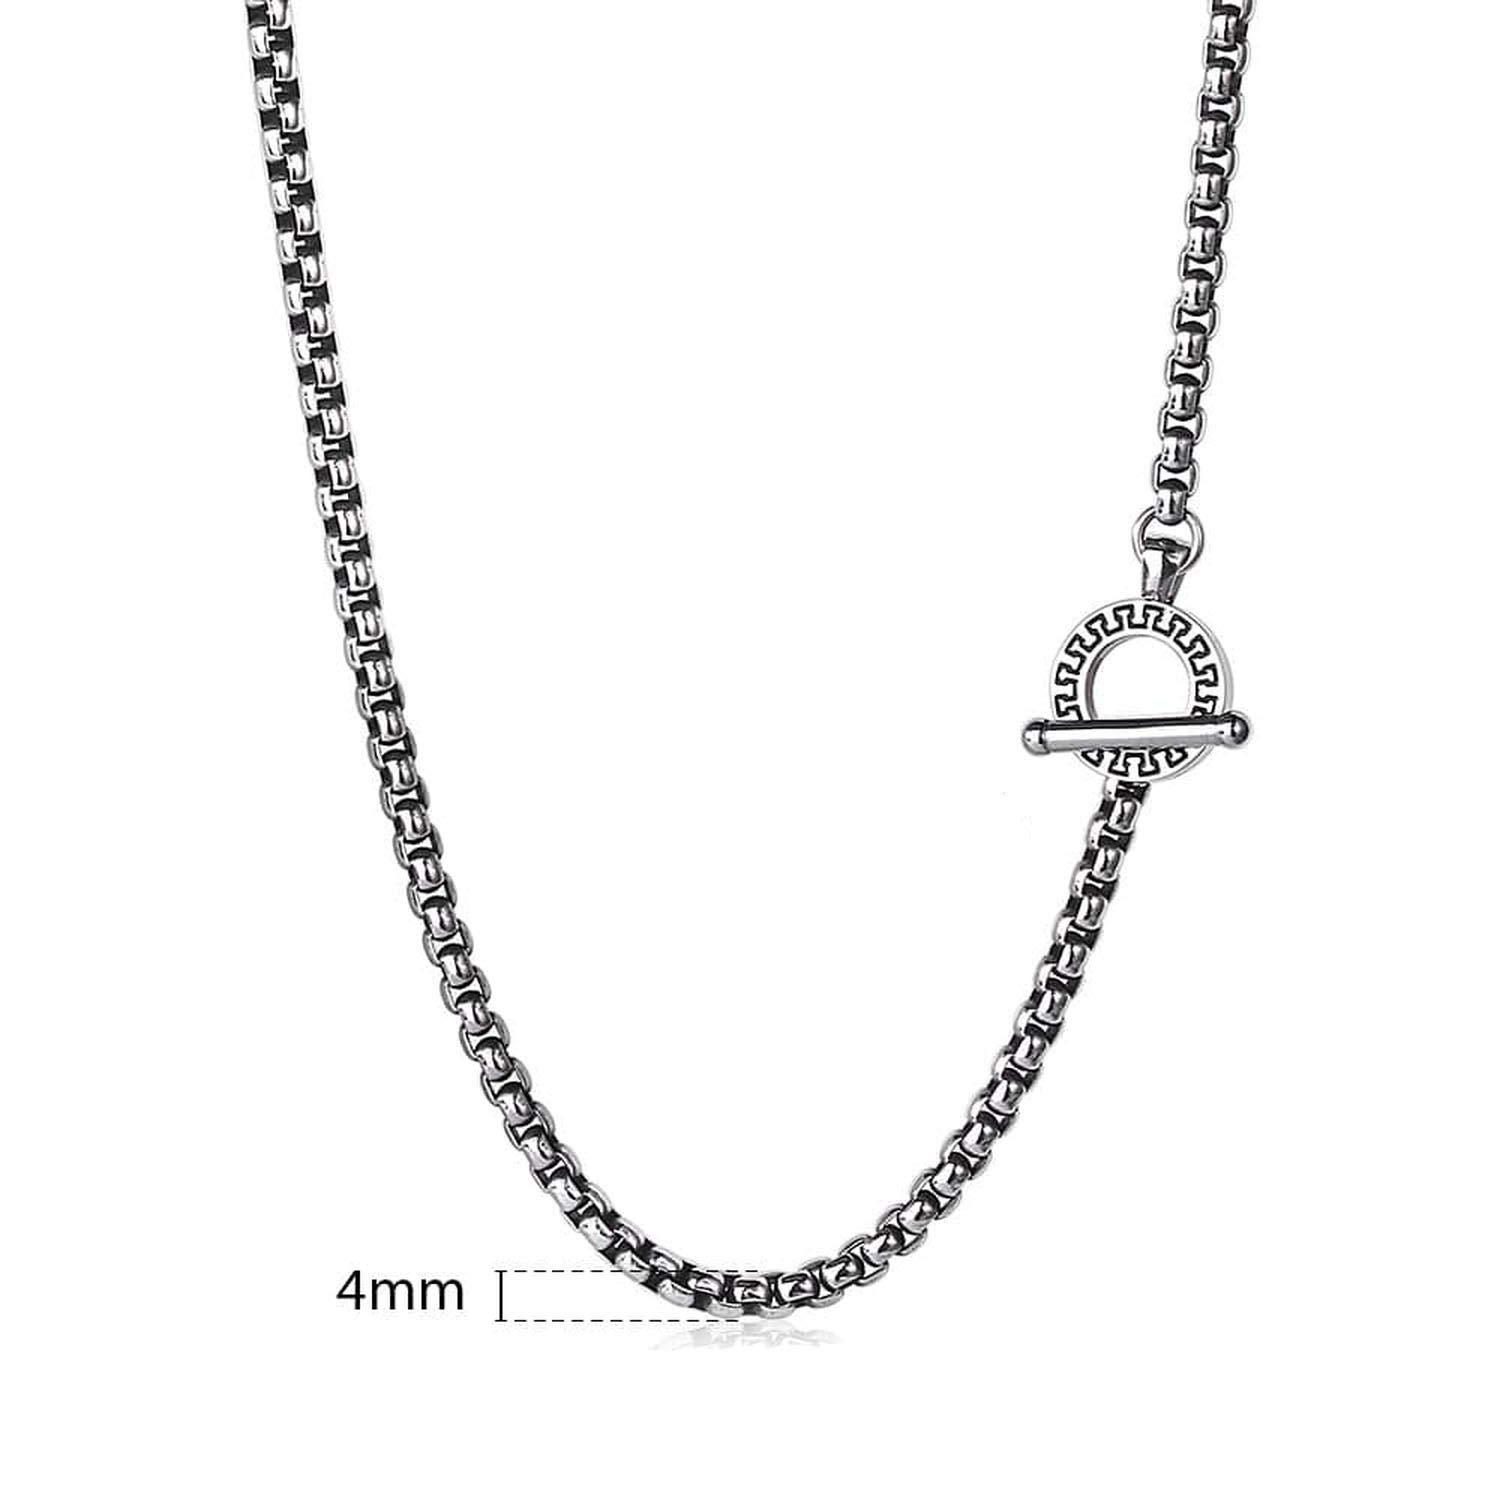 Mens Womens Necklace 4mm Box Link Stainless Steel Chain Silver Necklace 18-36inch DIY Fashion Jewelry,T1,32inch